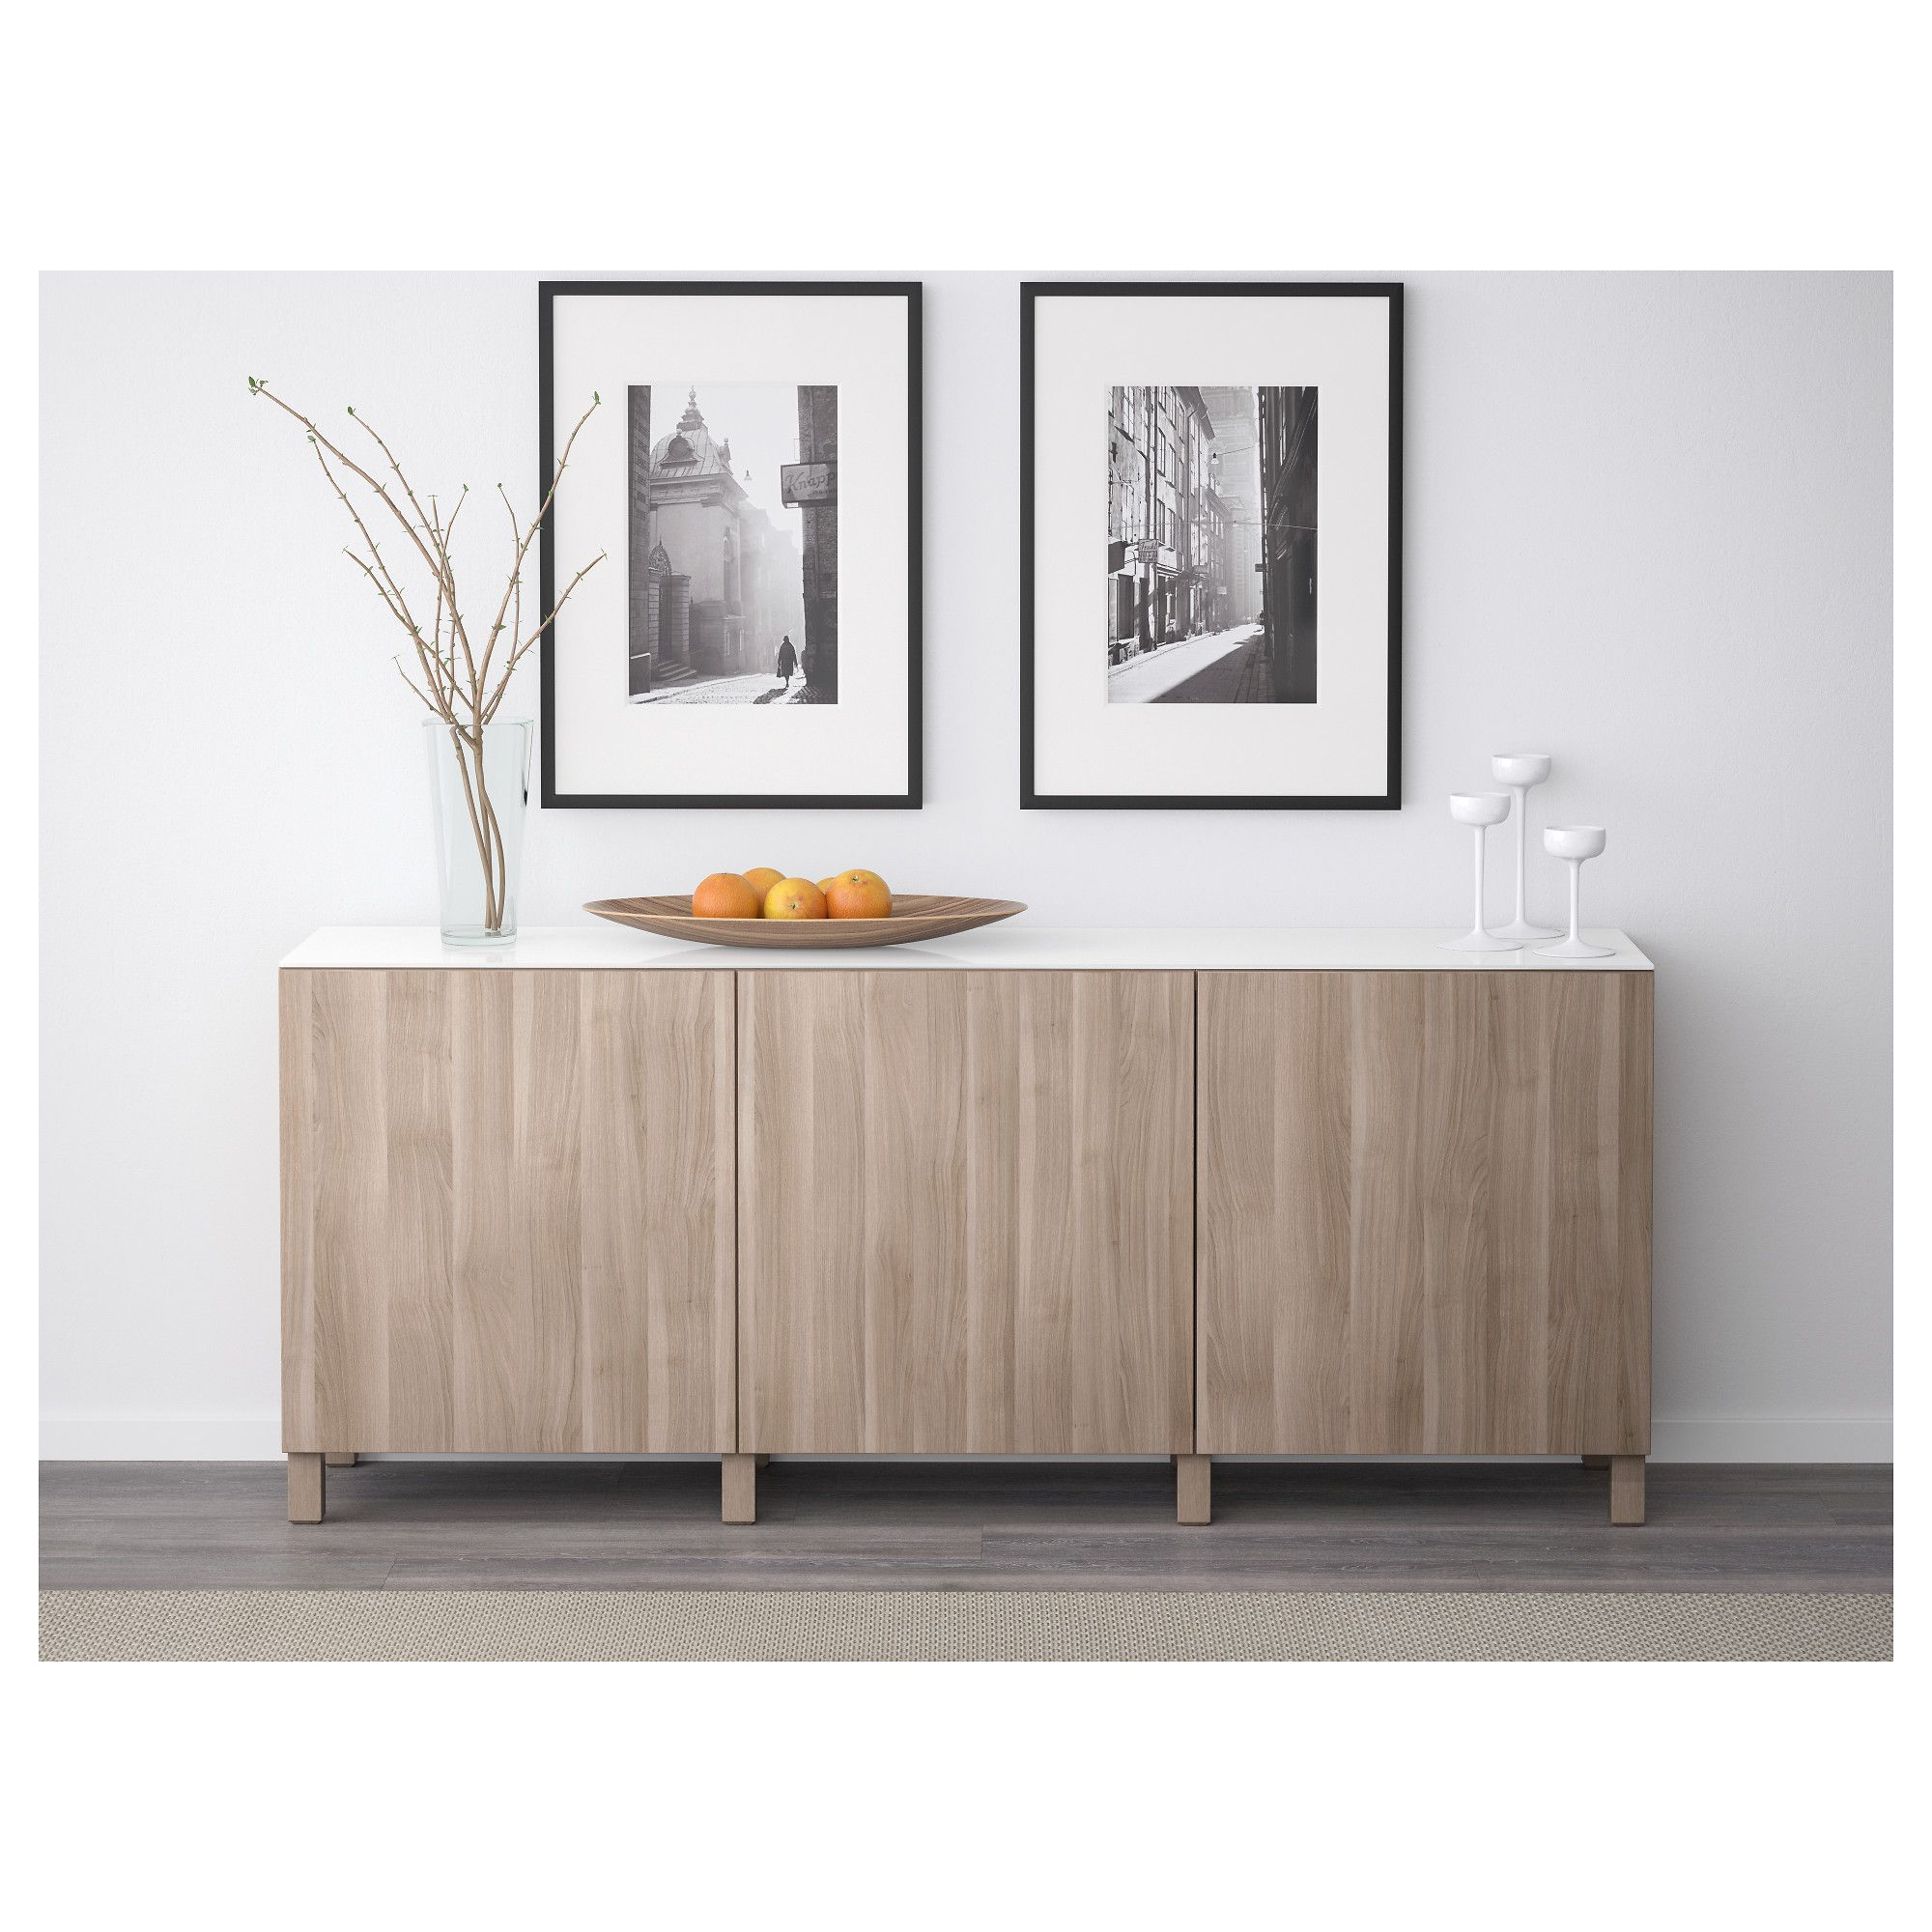 Ikea Walnut Shelves: Storage Combination With Doors, Lappviken Walnut Effect